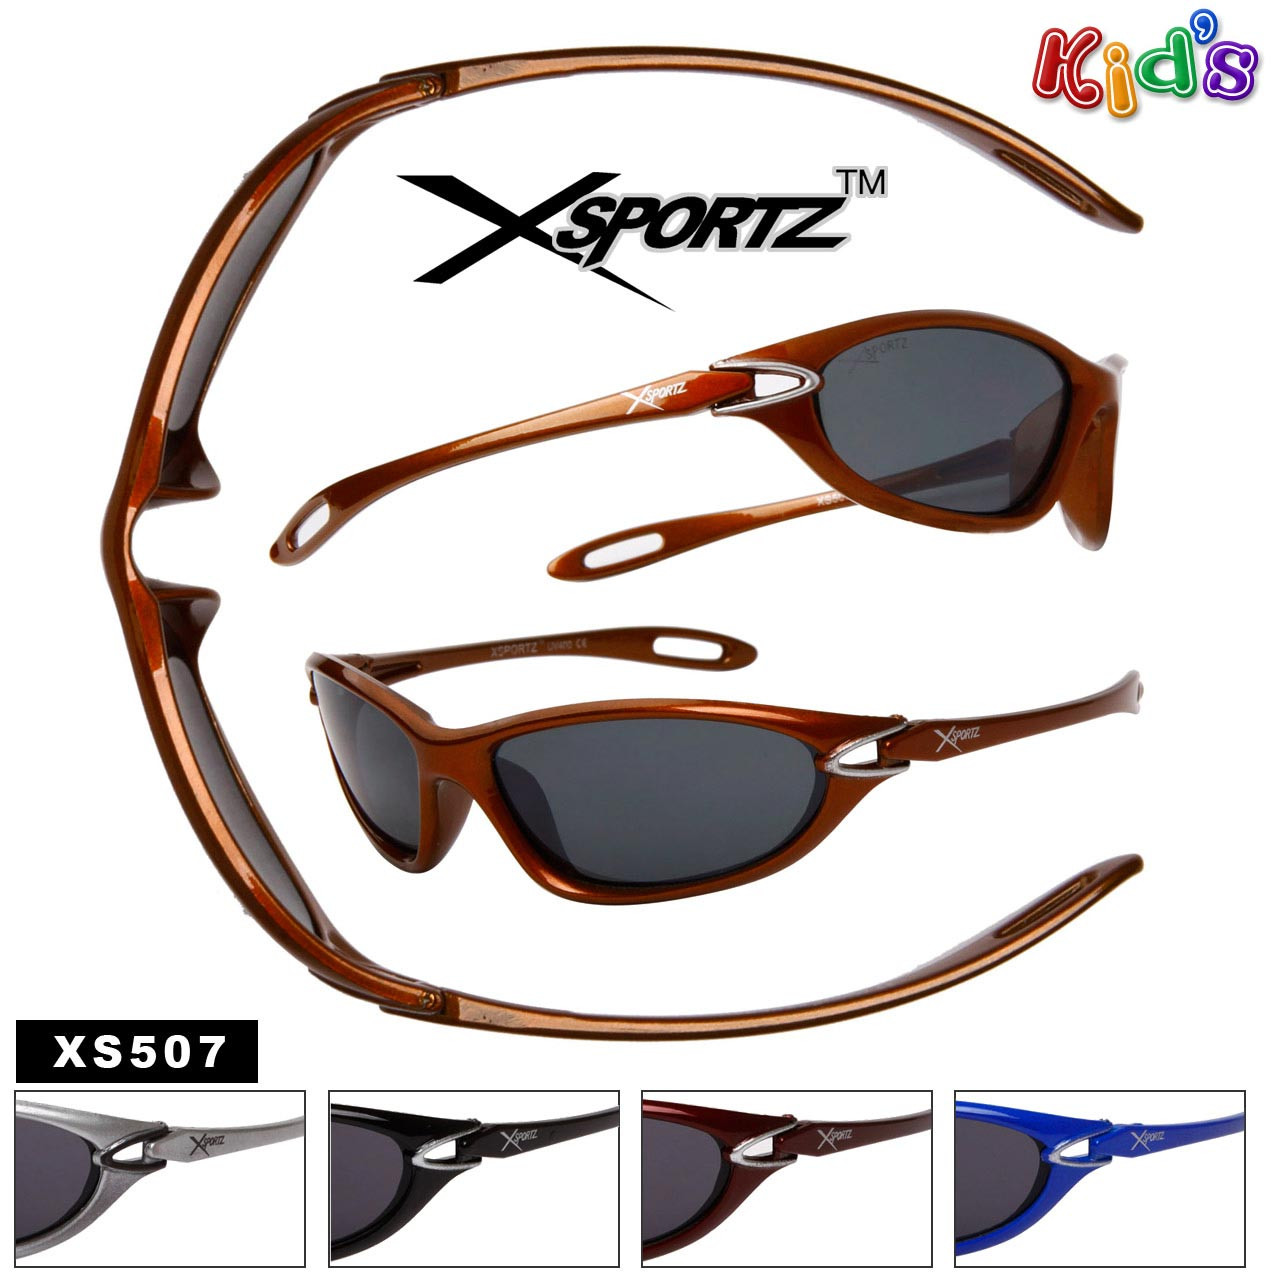 Xsportz™ Sport Sunglasses for Kids XS502